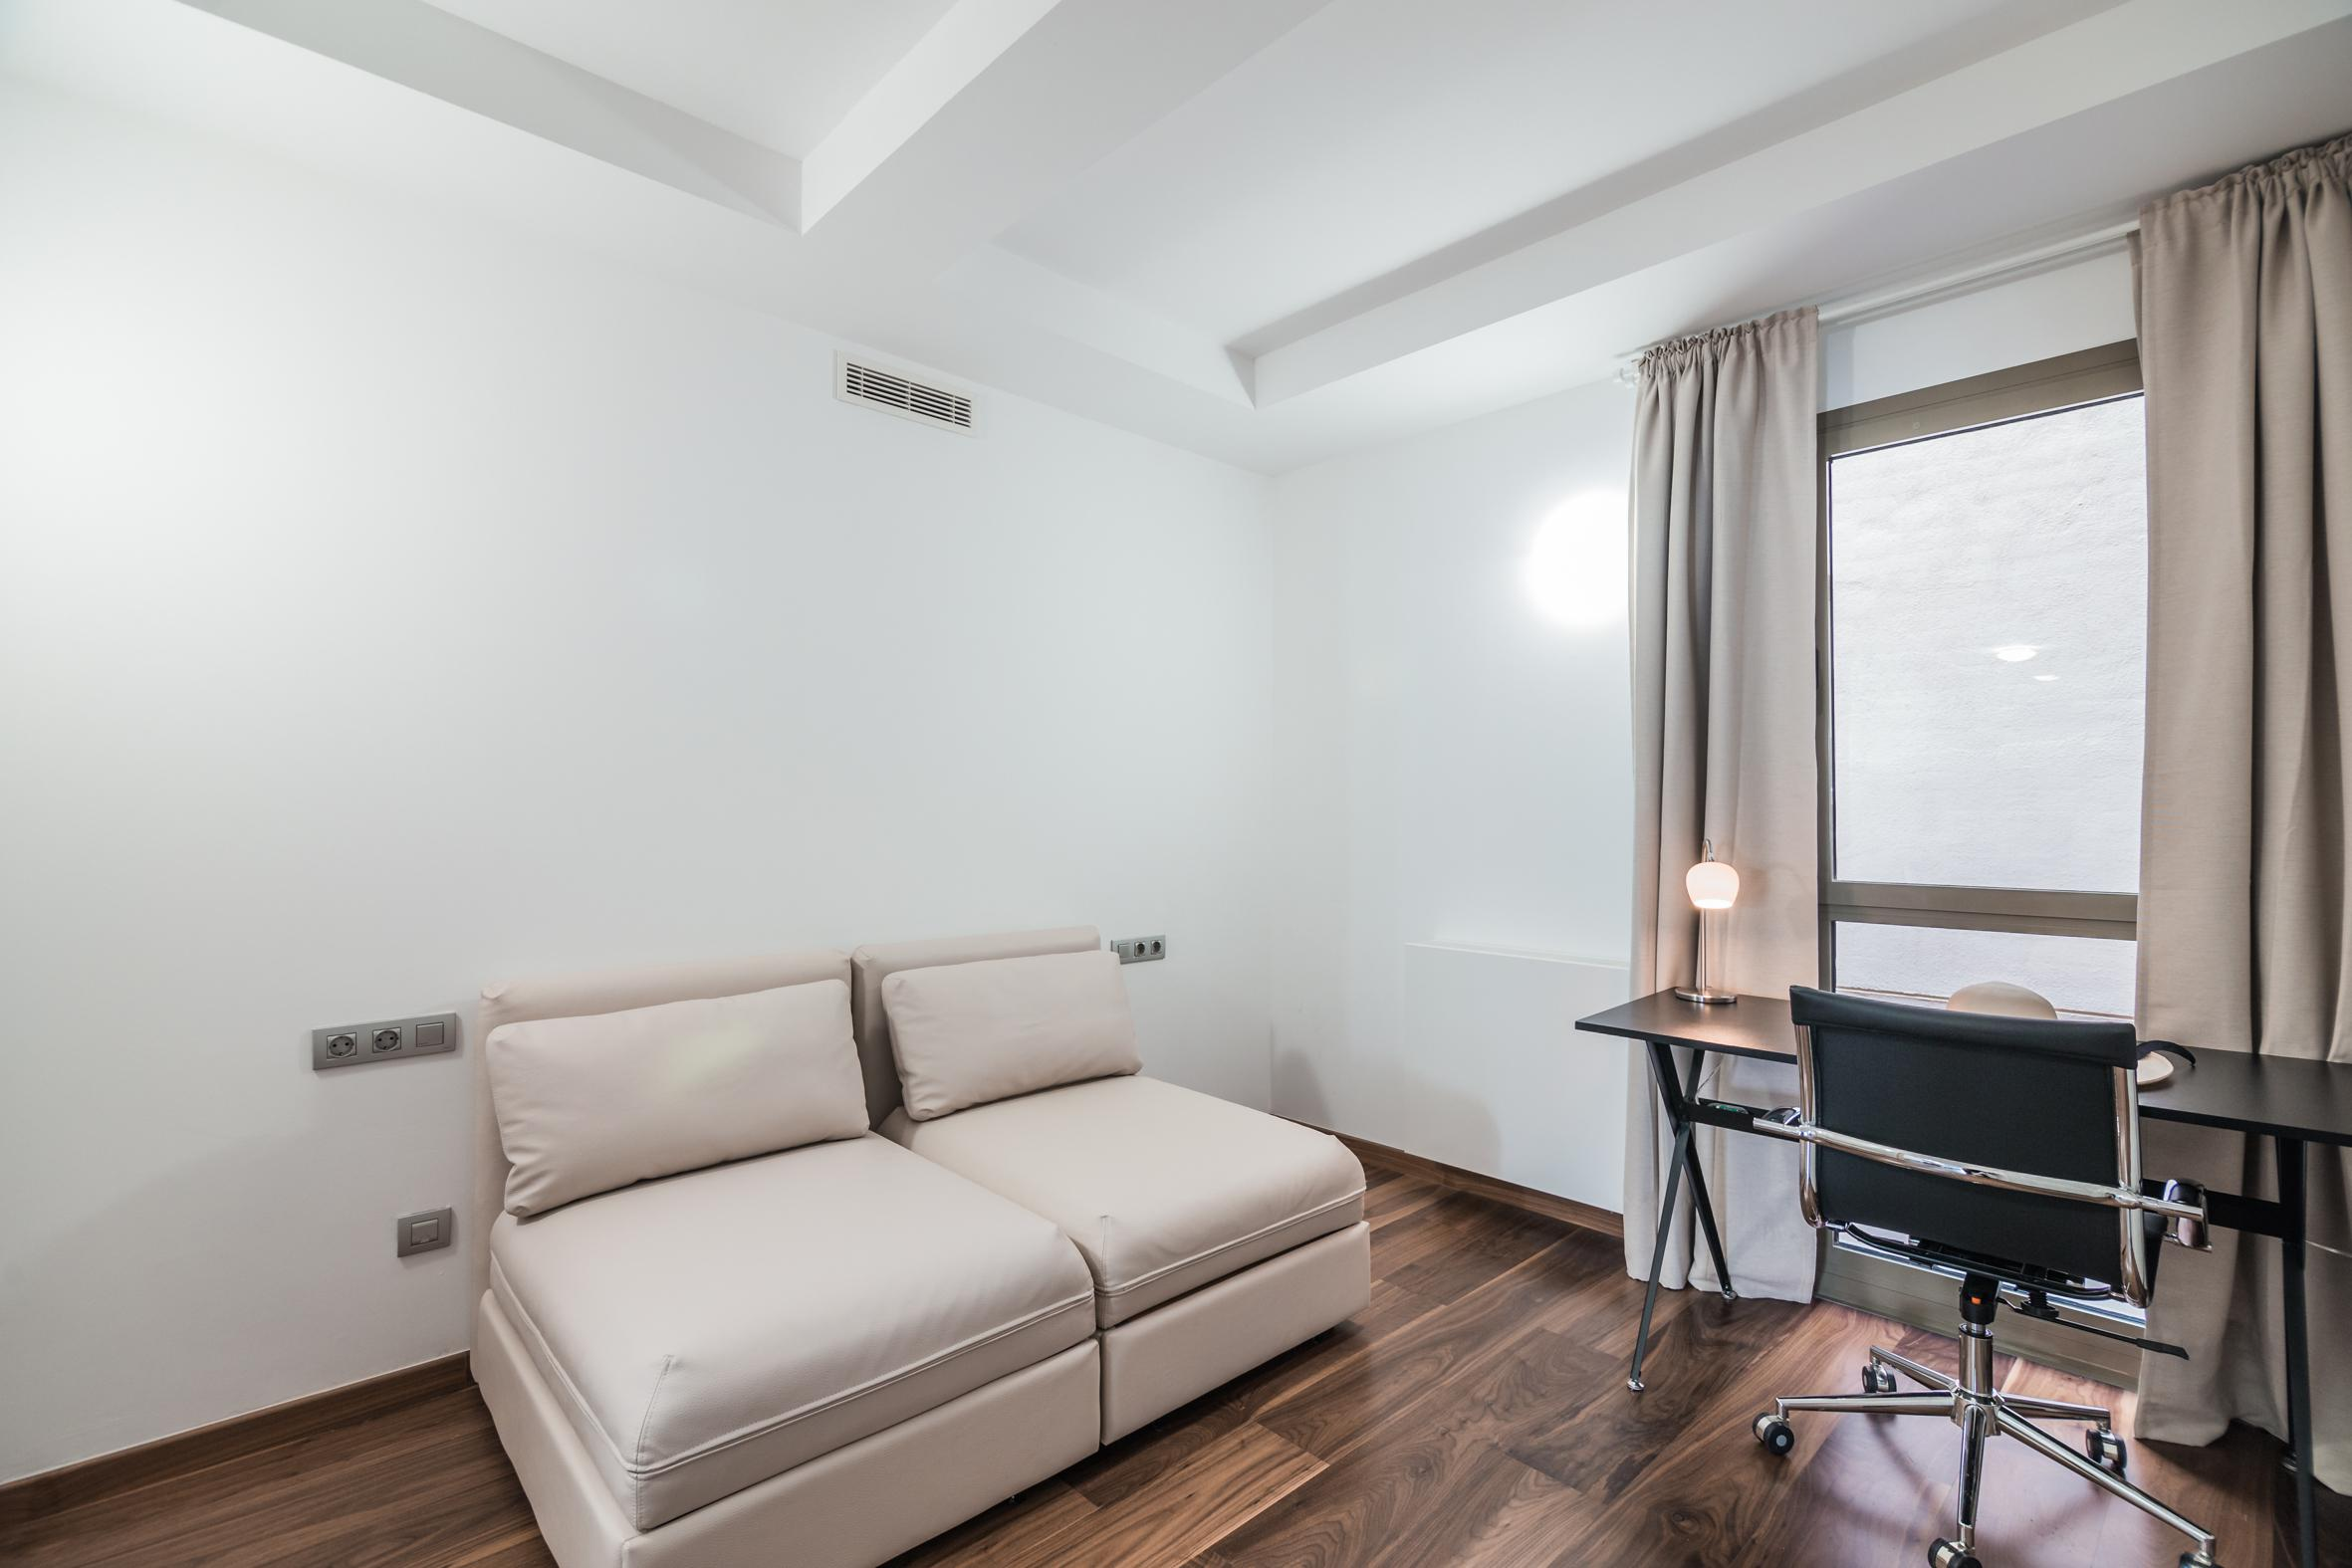 194056 Flat for sale in Ciutat Vella, Barri Gótic 9